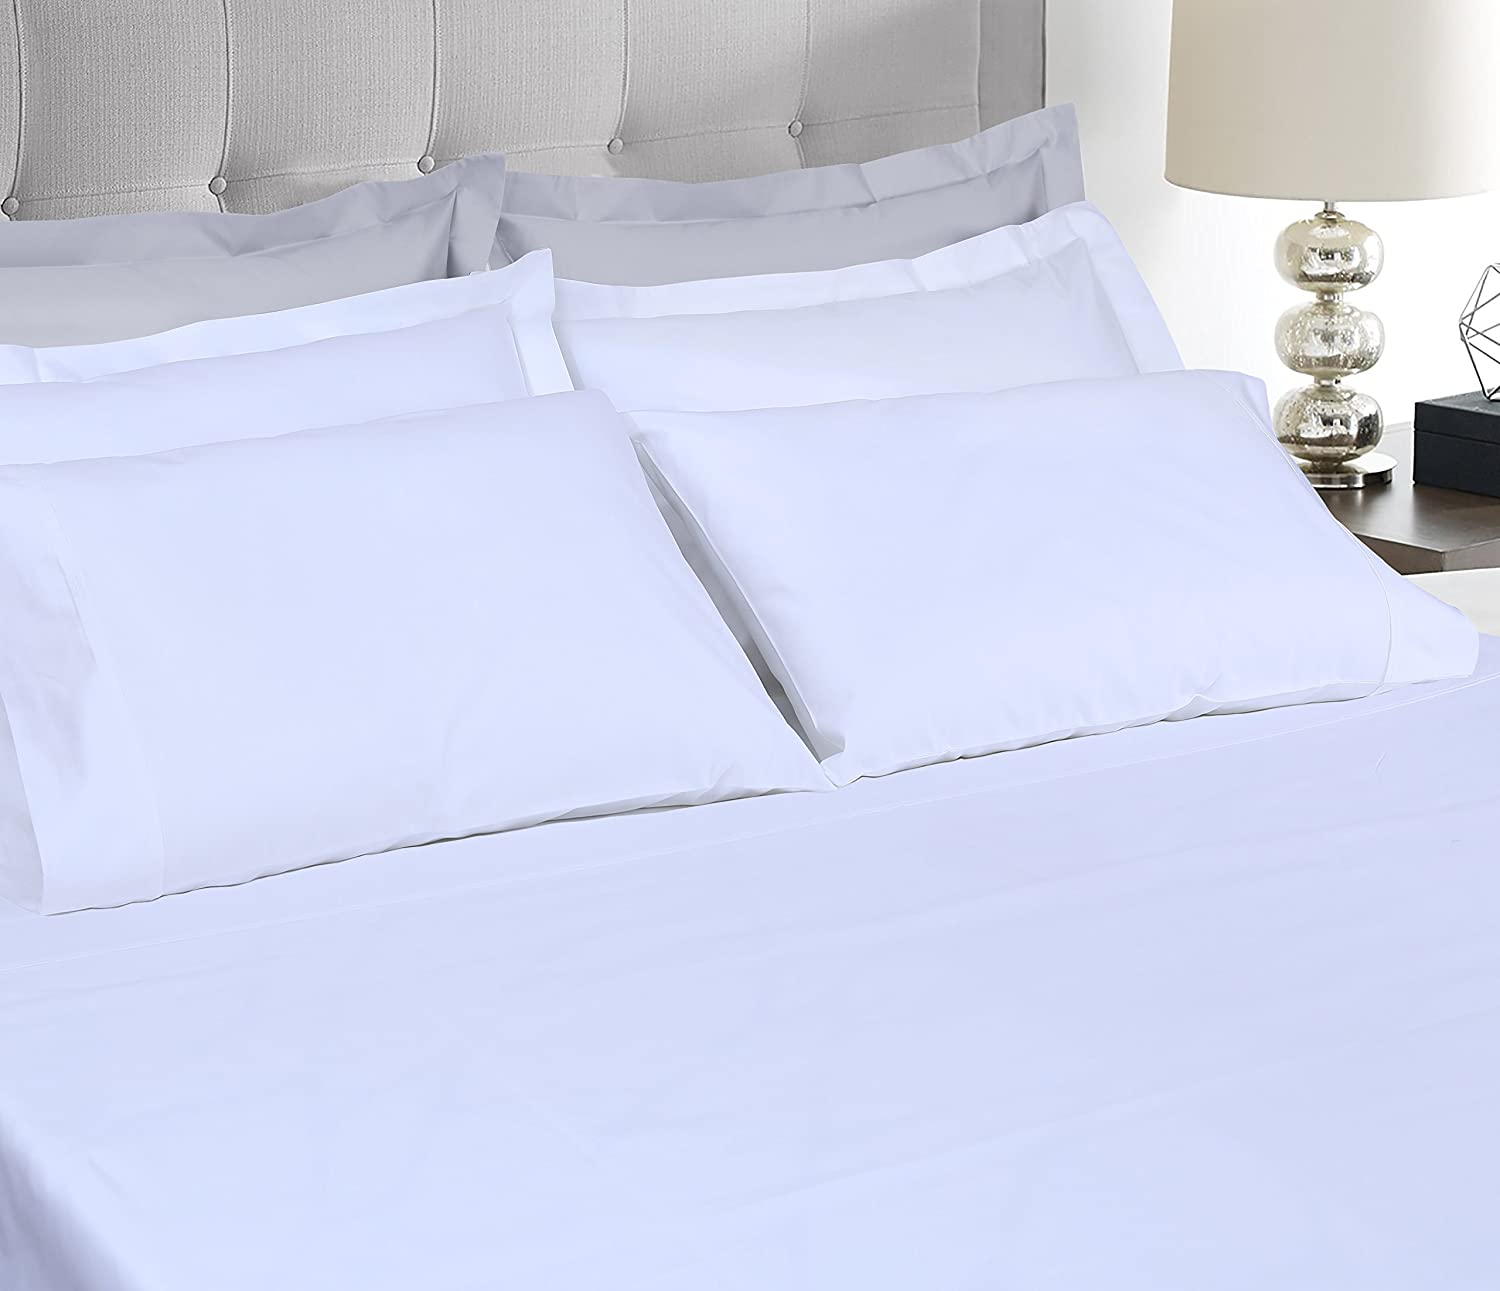 Threadmill Home Linen 400 Thread Count 100% Extra-Long Staple Cotton Sheets, Luxury Bedding, Queen Sheets 4 Piece Set, Smooth Sateen, White